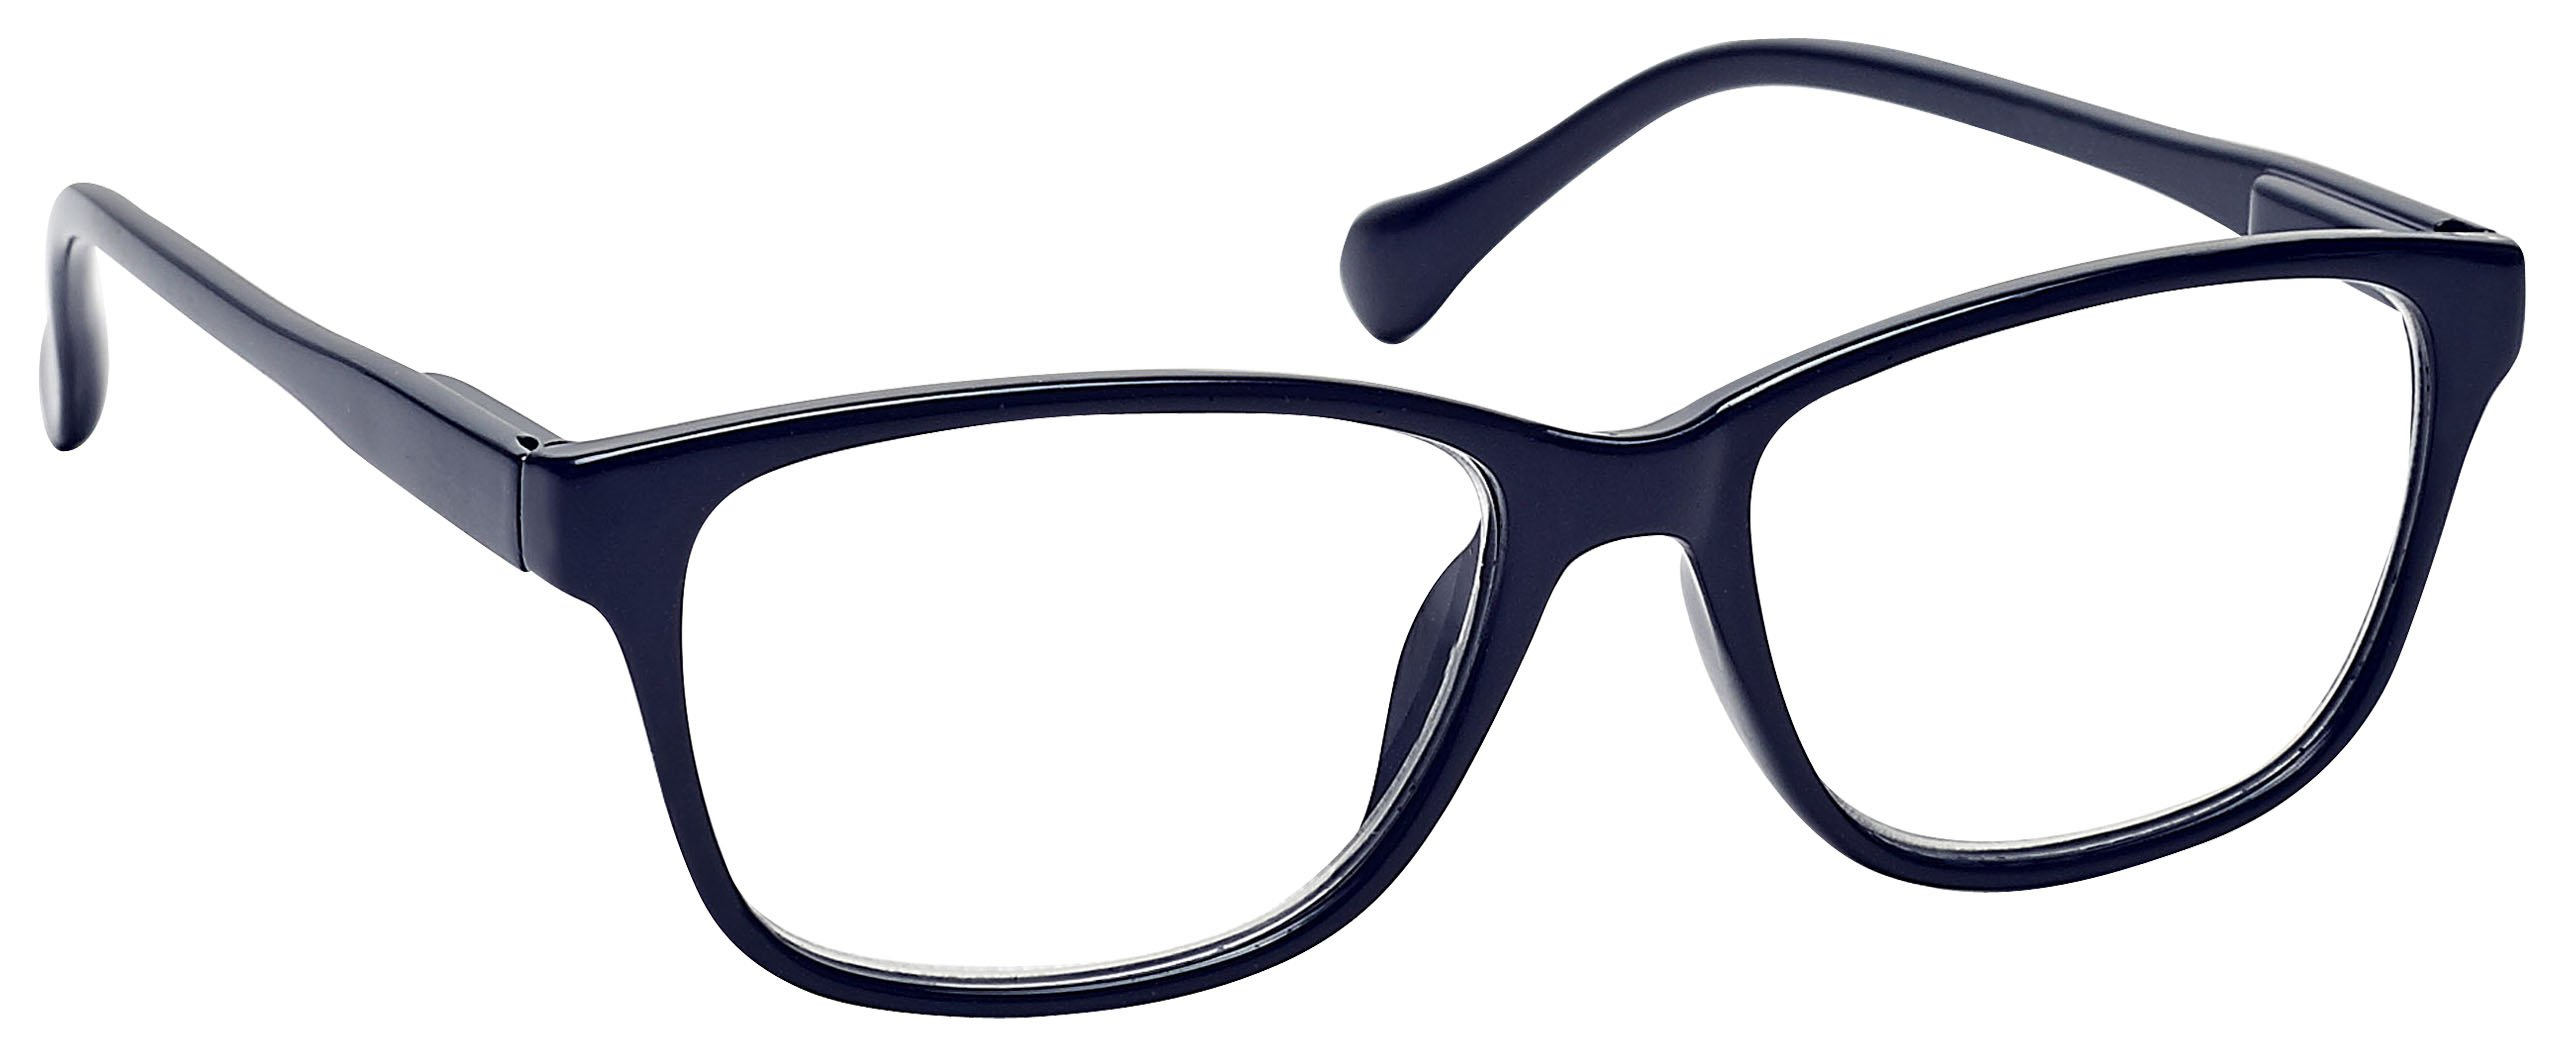 7449cd775db The Reading Glasses Company Navy Blue Lightweight Readers Designer Style  Mens Womens Spring Hinges R27-